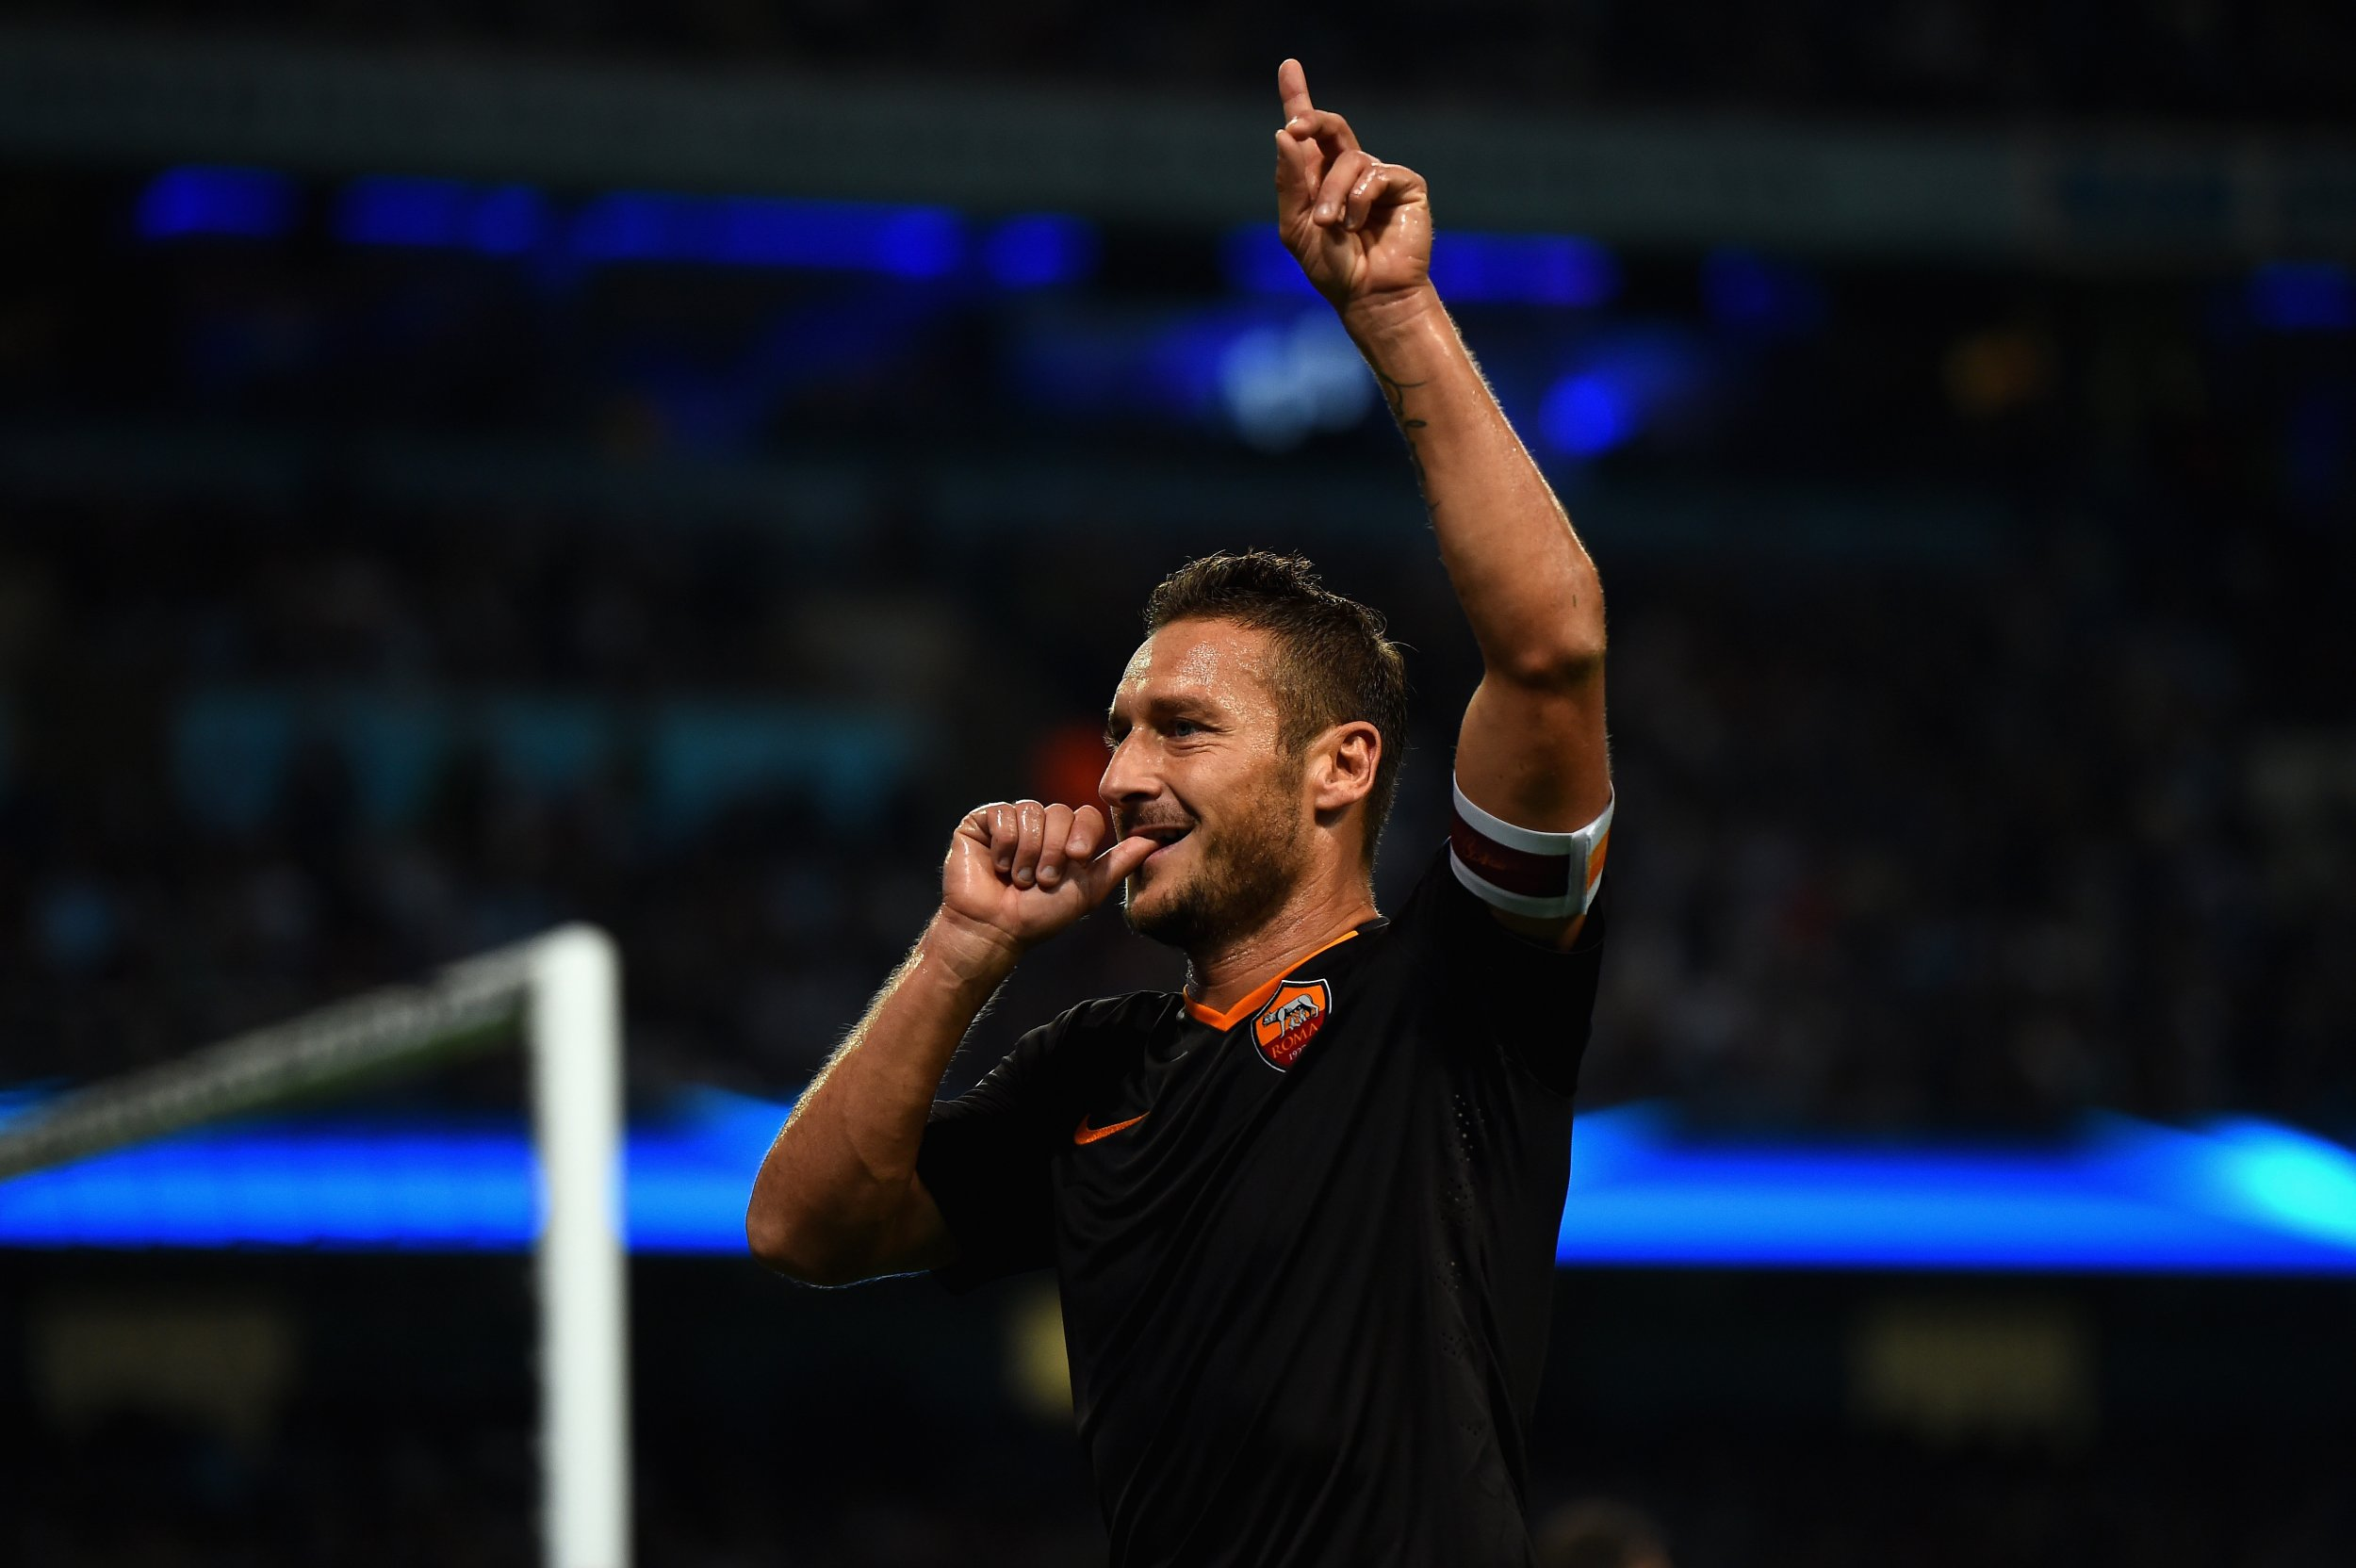 Francesco Totti is The Muhammad Ali of Football Says Roma Coach